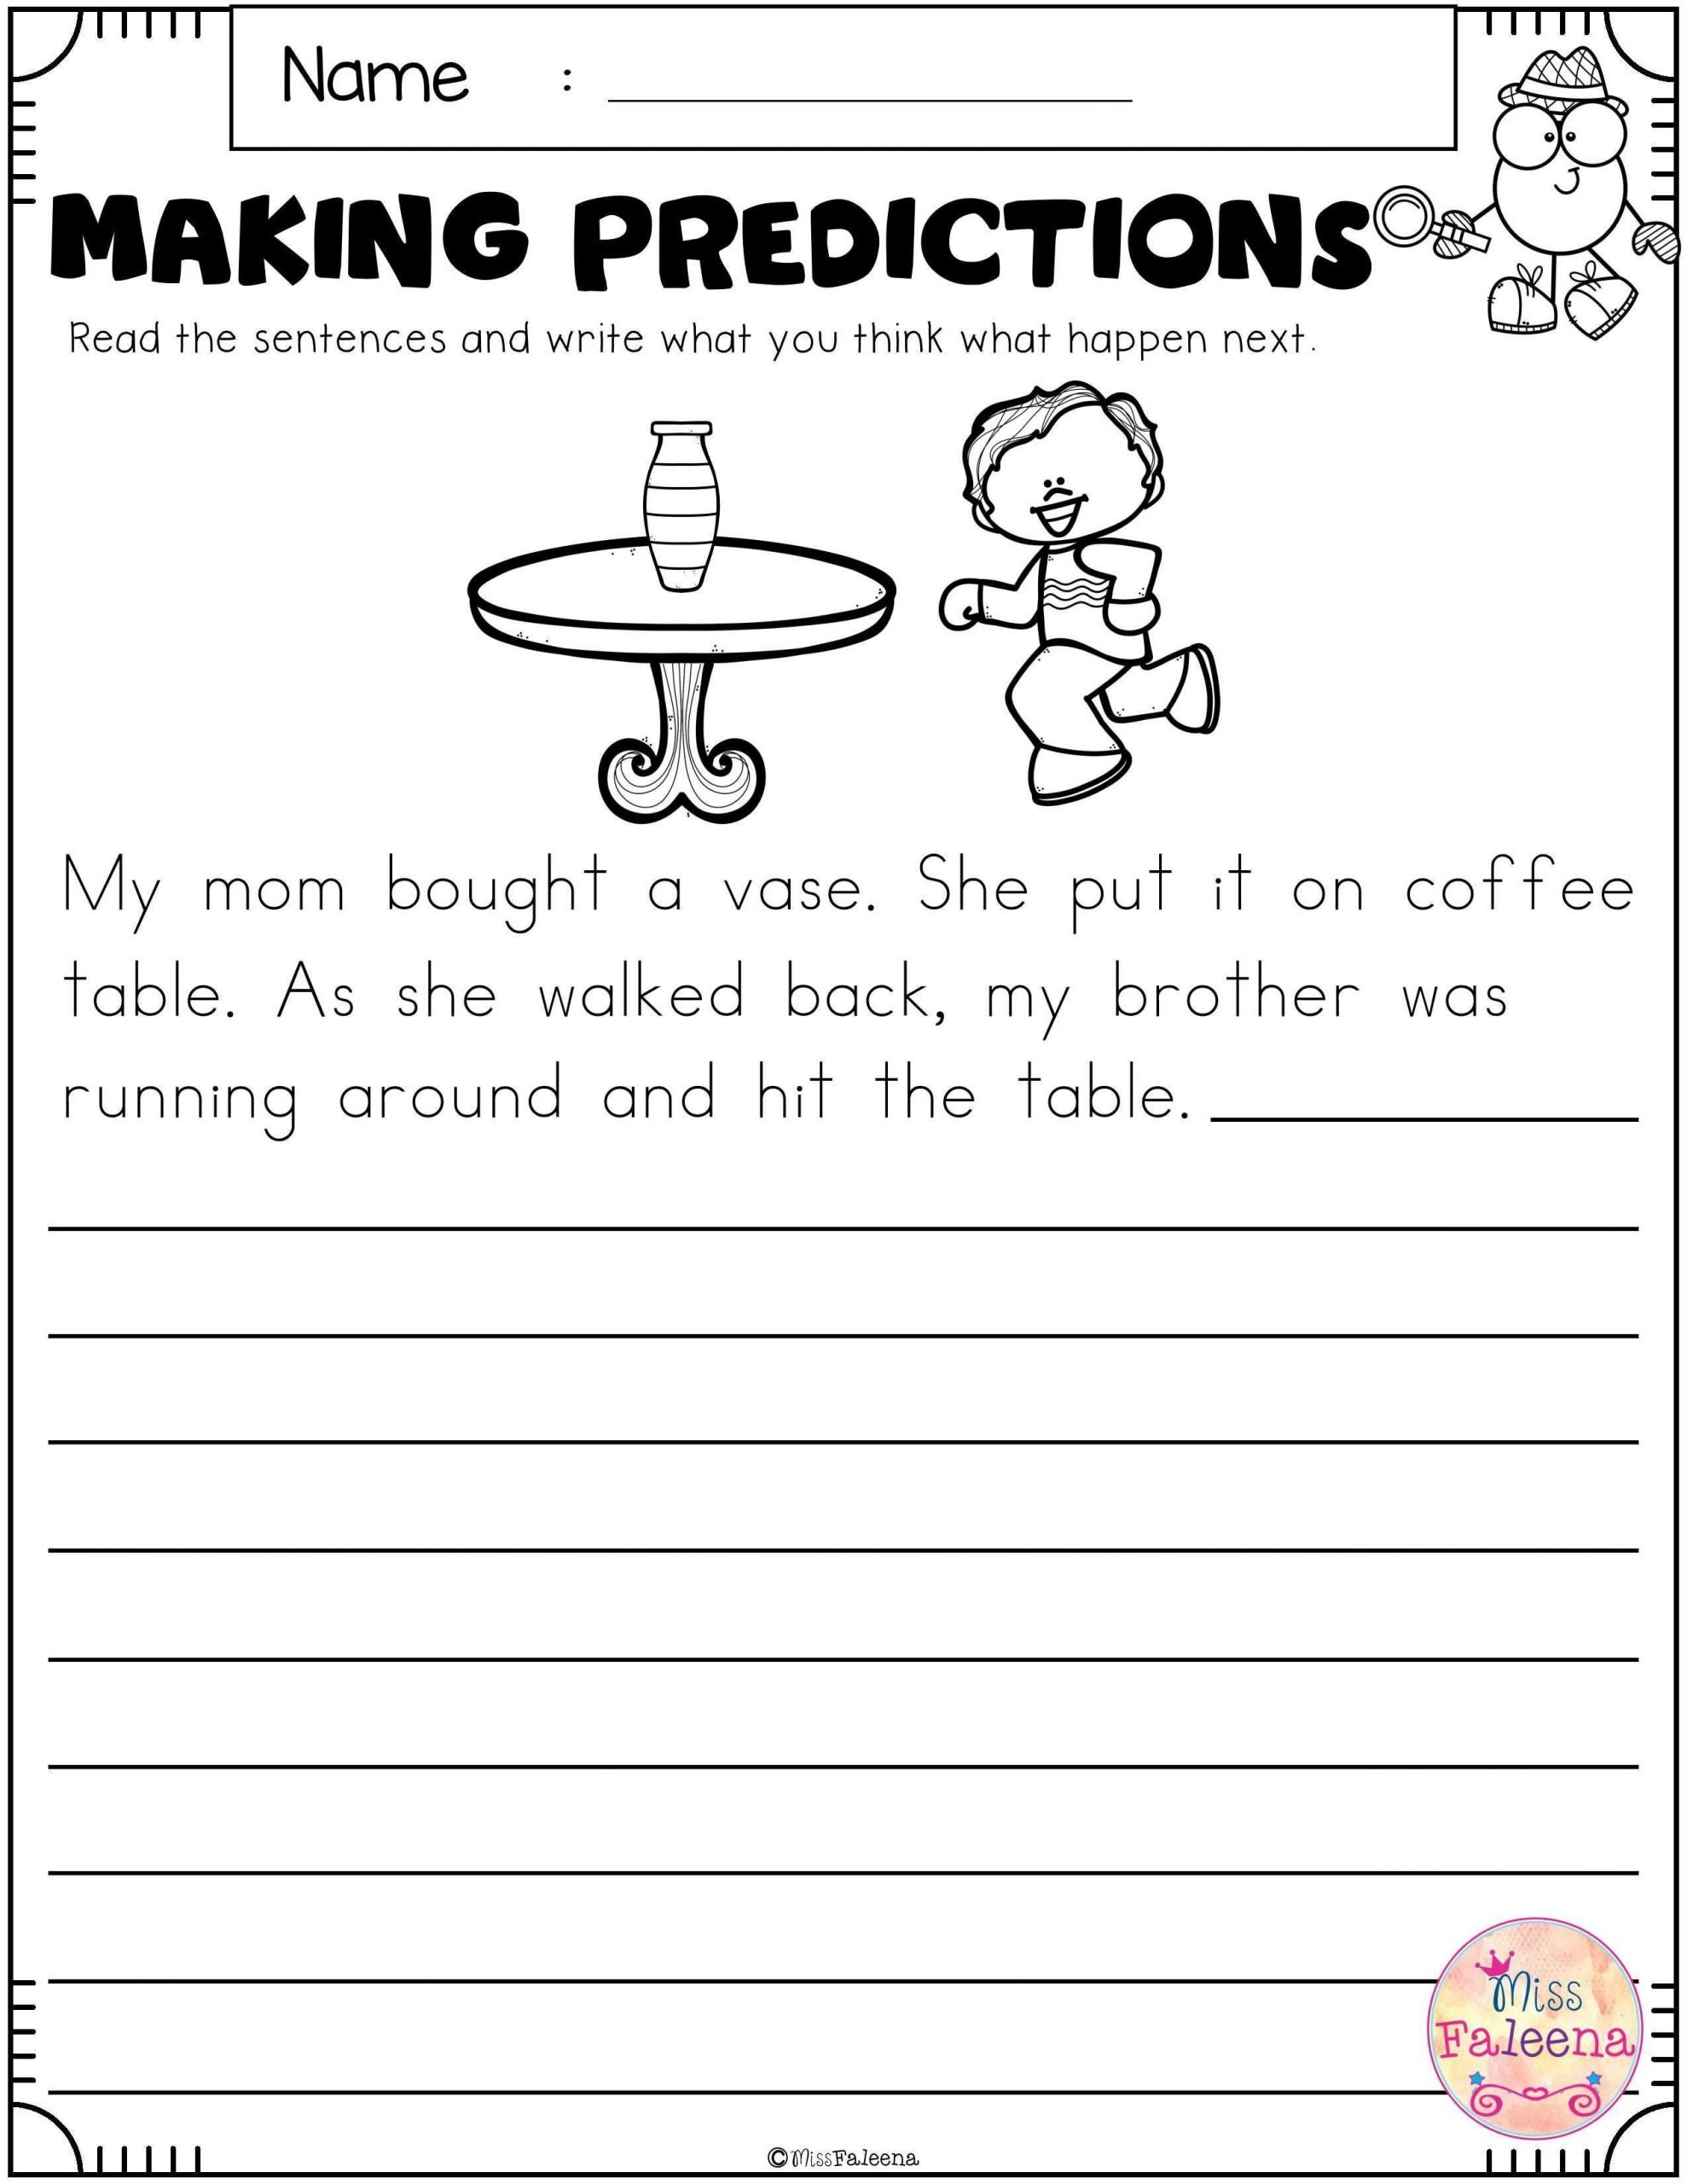 Making Predictions Worksheets 2nd Grade Free Making Predictions Contains 8 Pages Of Making